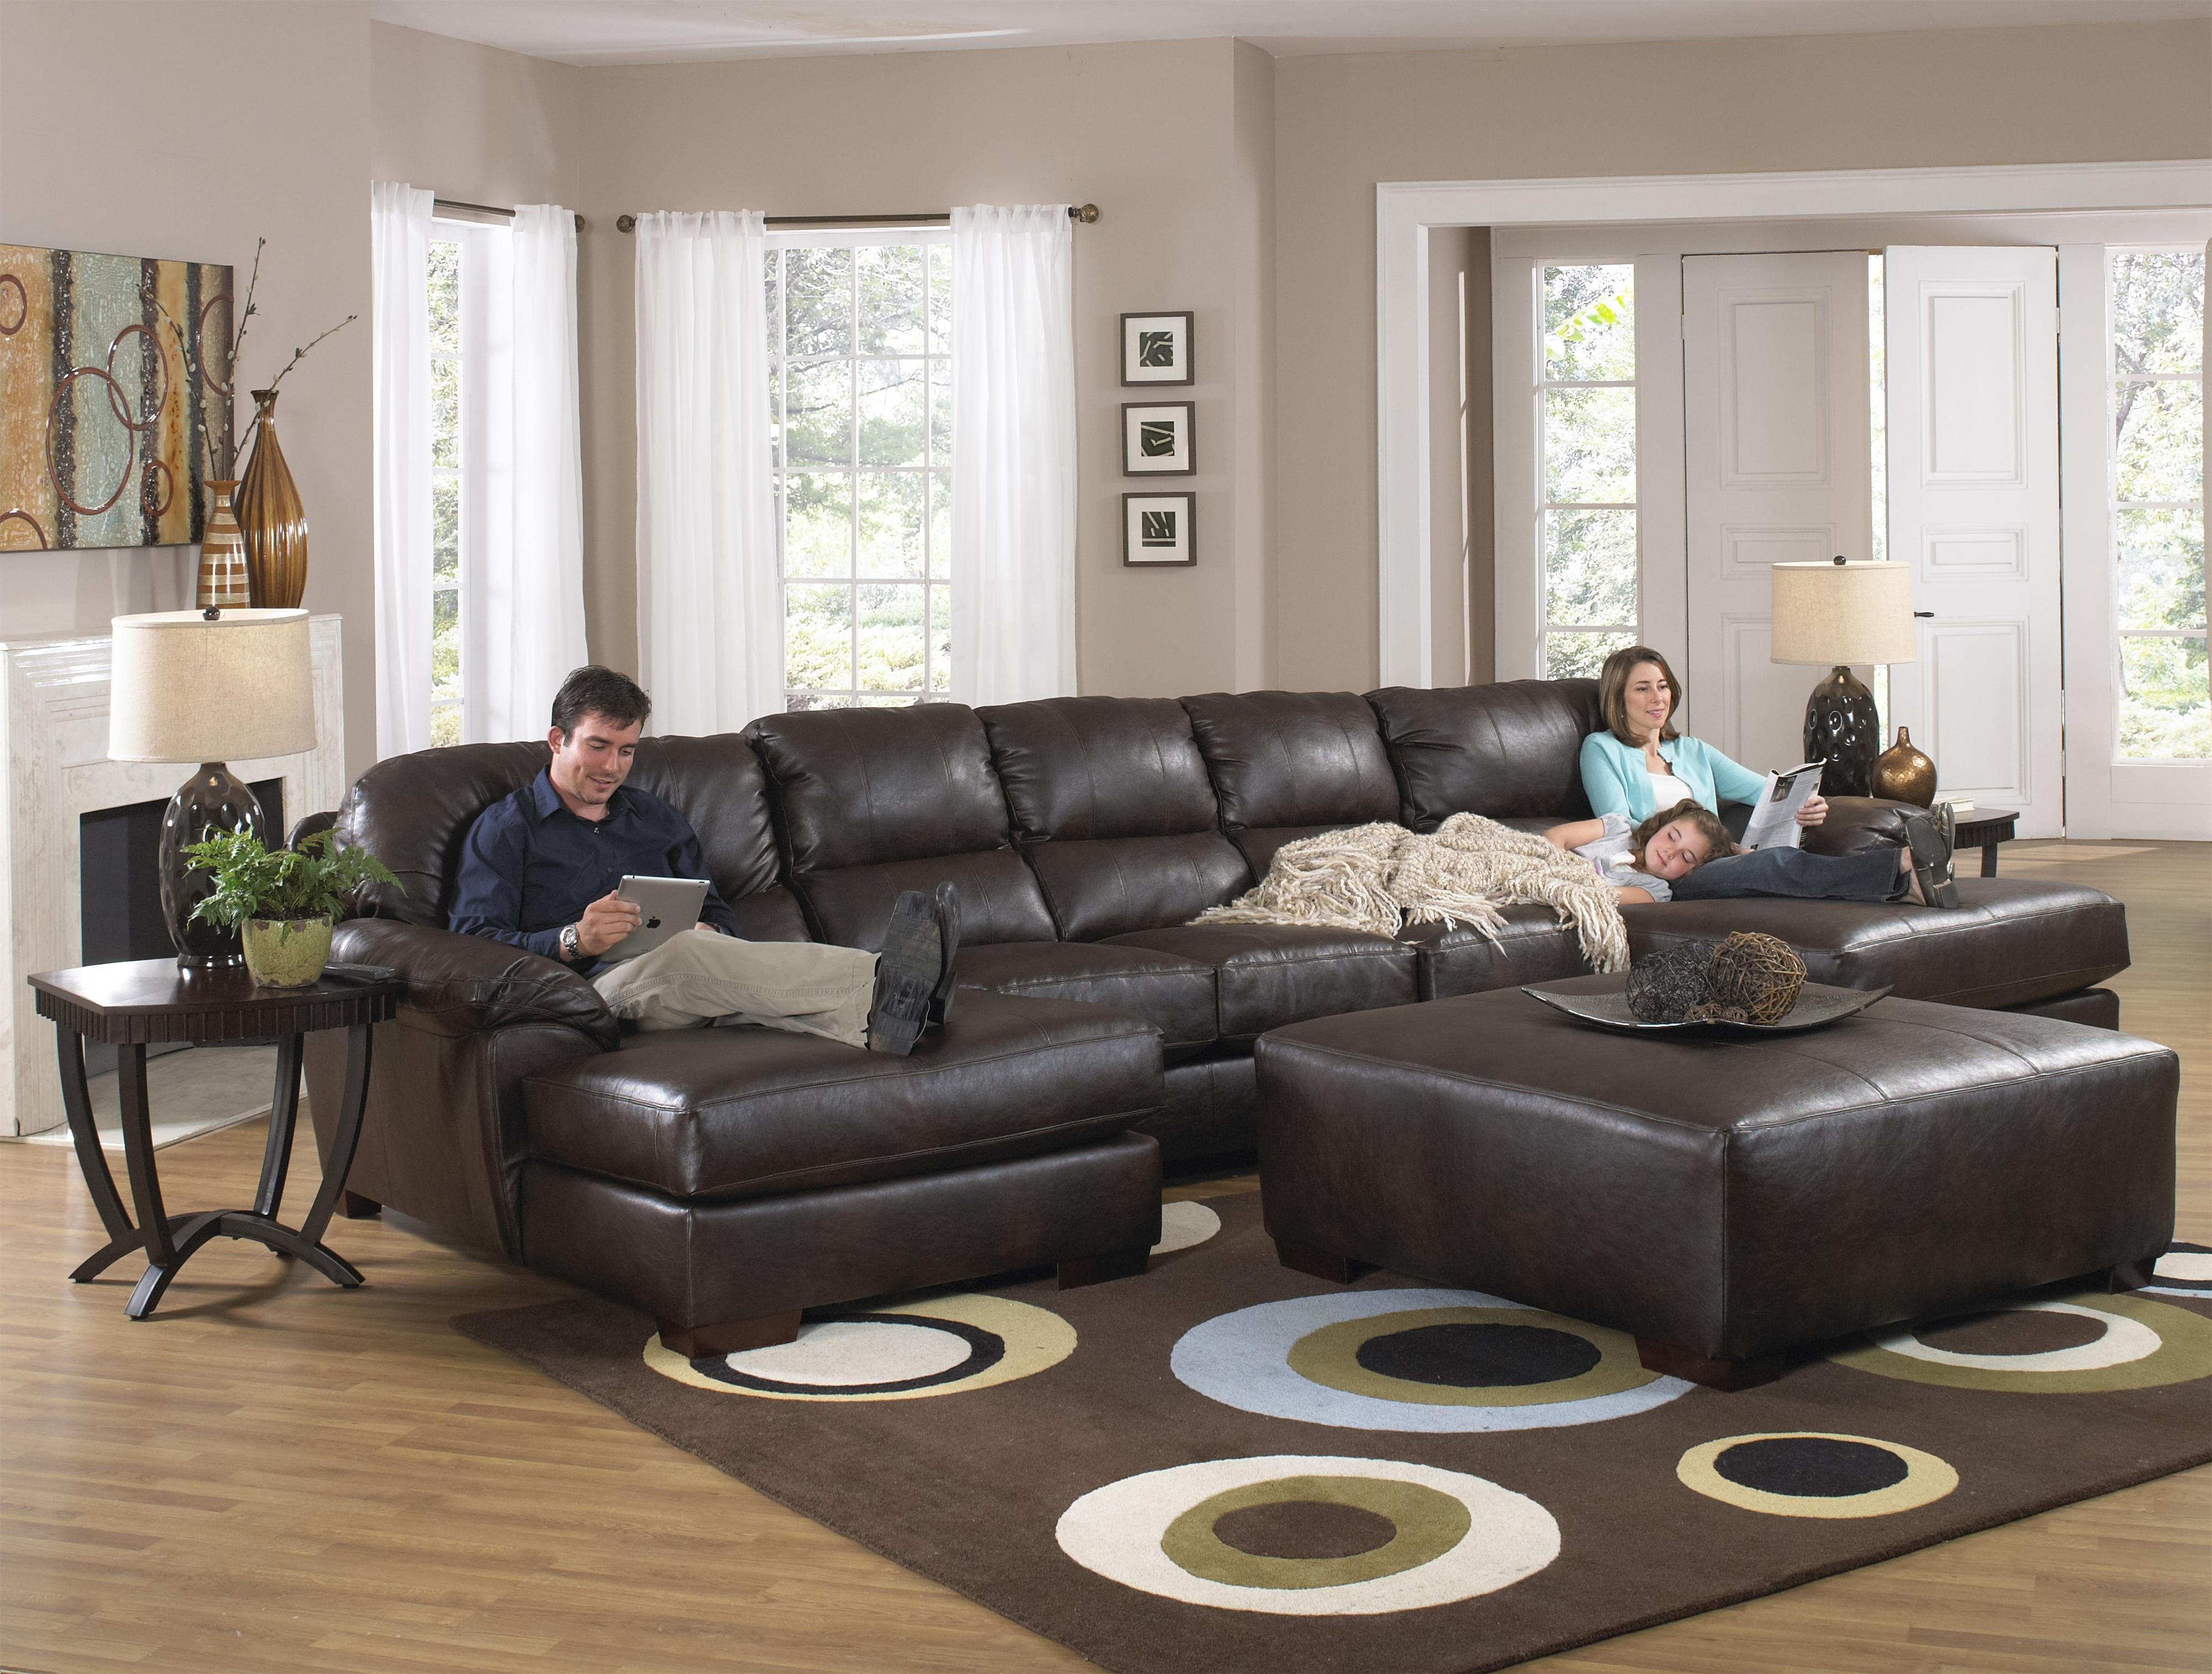 Best And Newest Sectional Couches With Chaise Pertaining To Jackson Furniture Lawson Three Seat Sectional Sofa With Console (View 2 of 15)